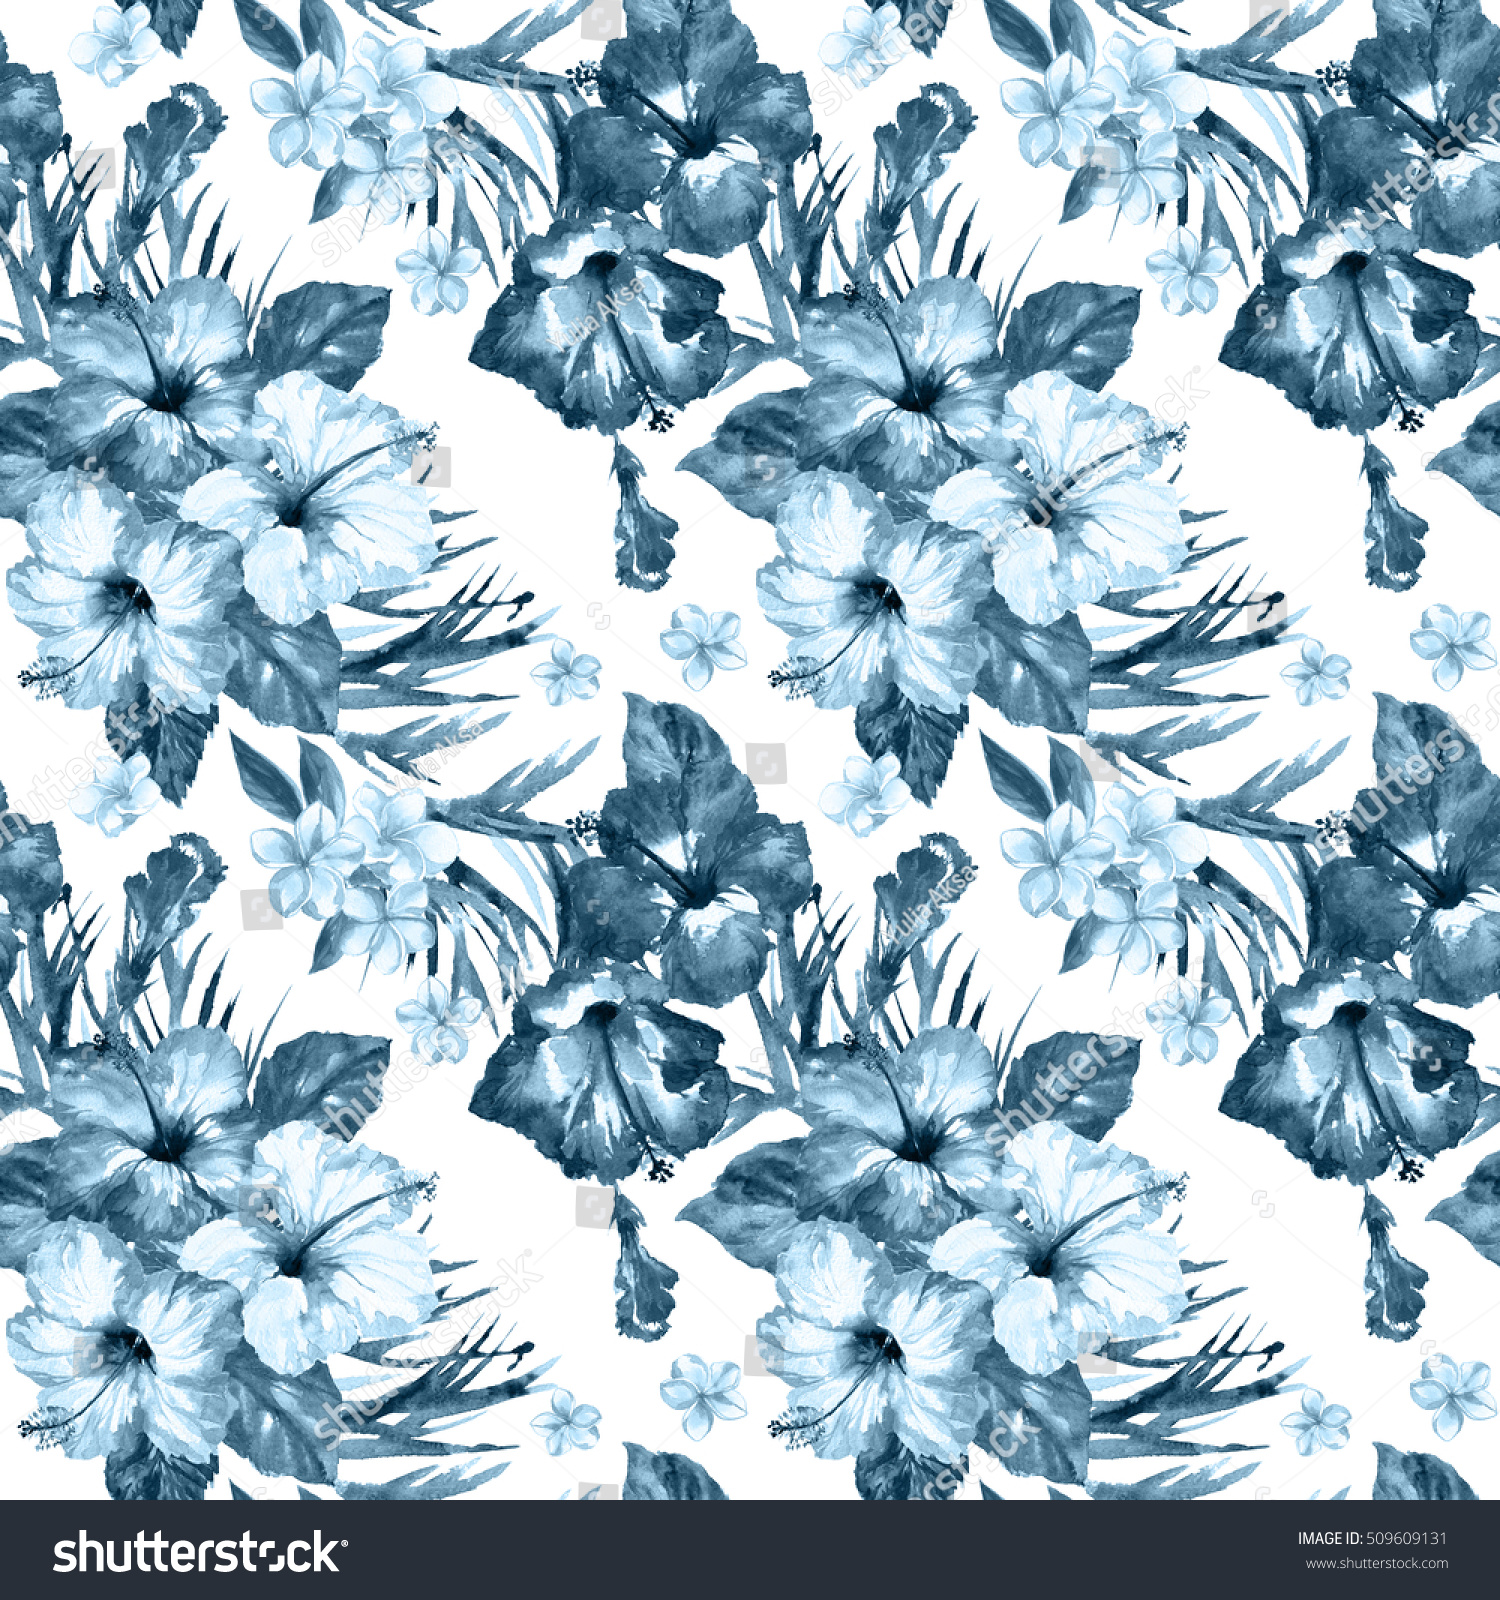 Tropical pattern watercolor abstract flowers plumeria hibiscus and leaves blue color background painted artwork blossom